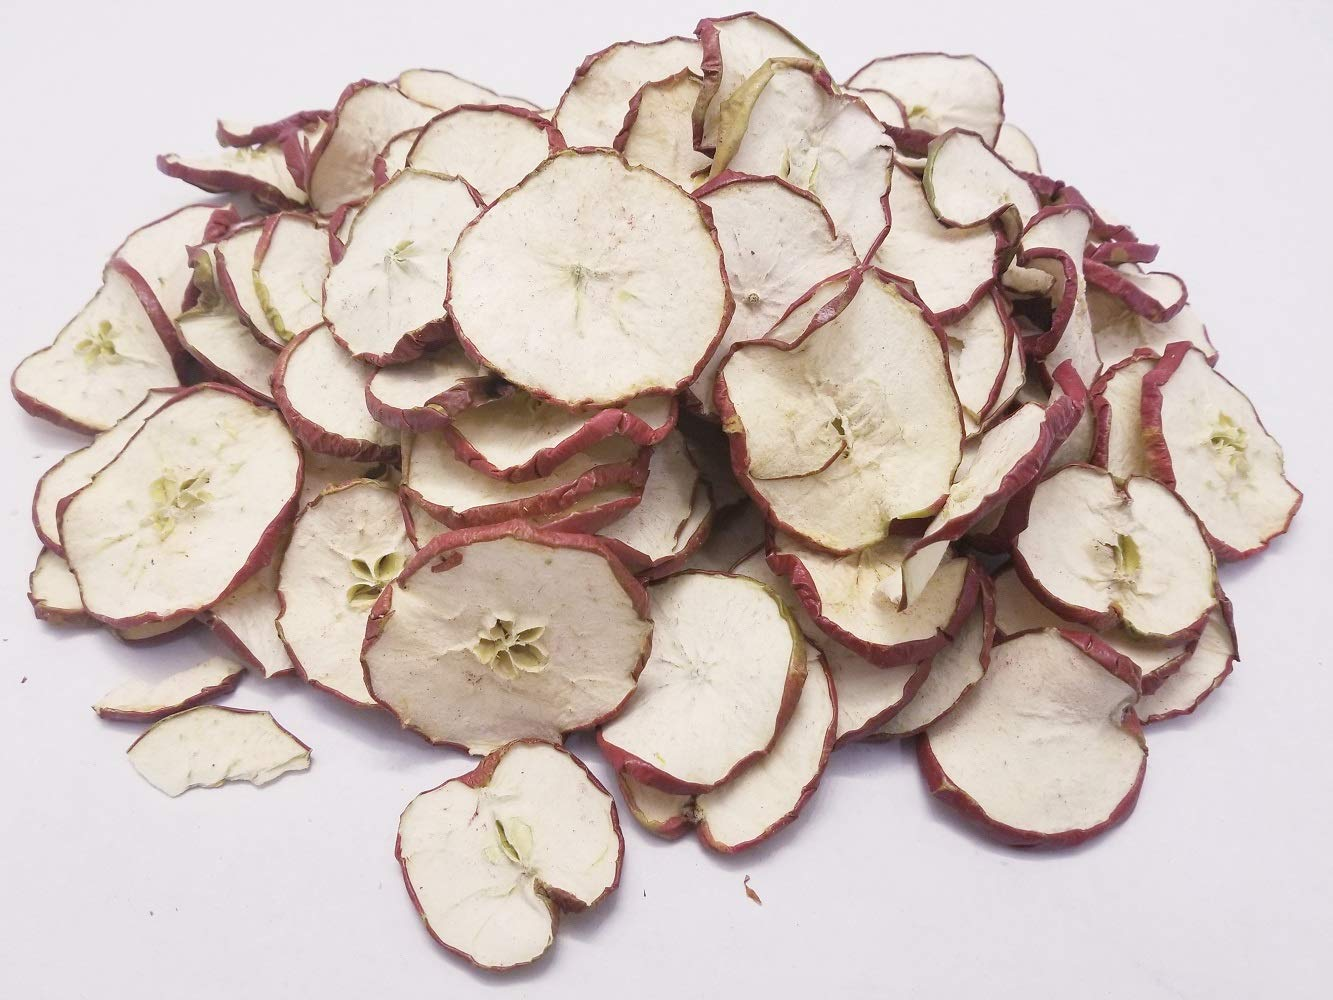 Little Valley Large 1 LB. Bag of Dried Red Apple Slices - Perfect as Potpourri, Craft, Bowl Filler, Decoration - Not Meant for Human Consumption